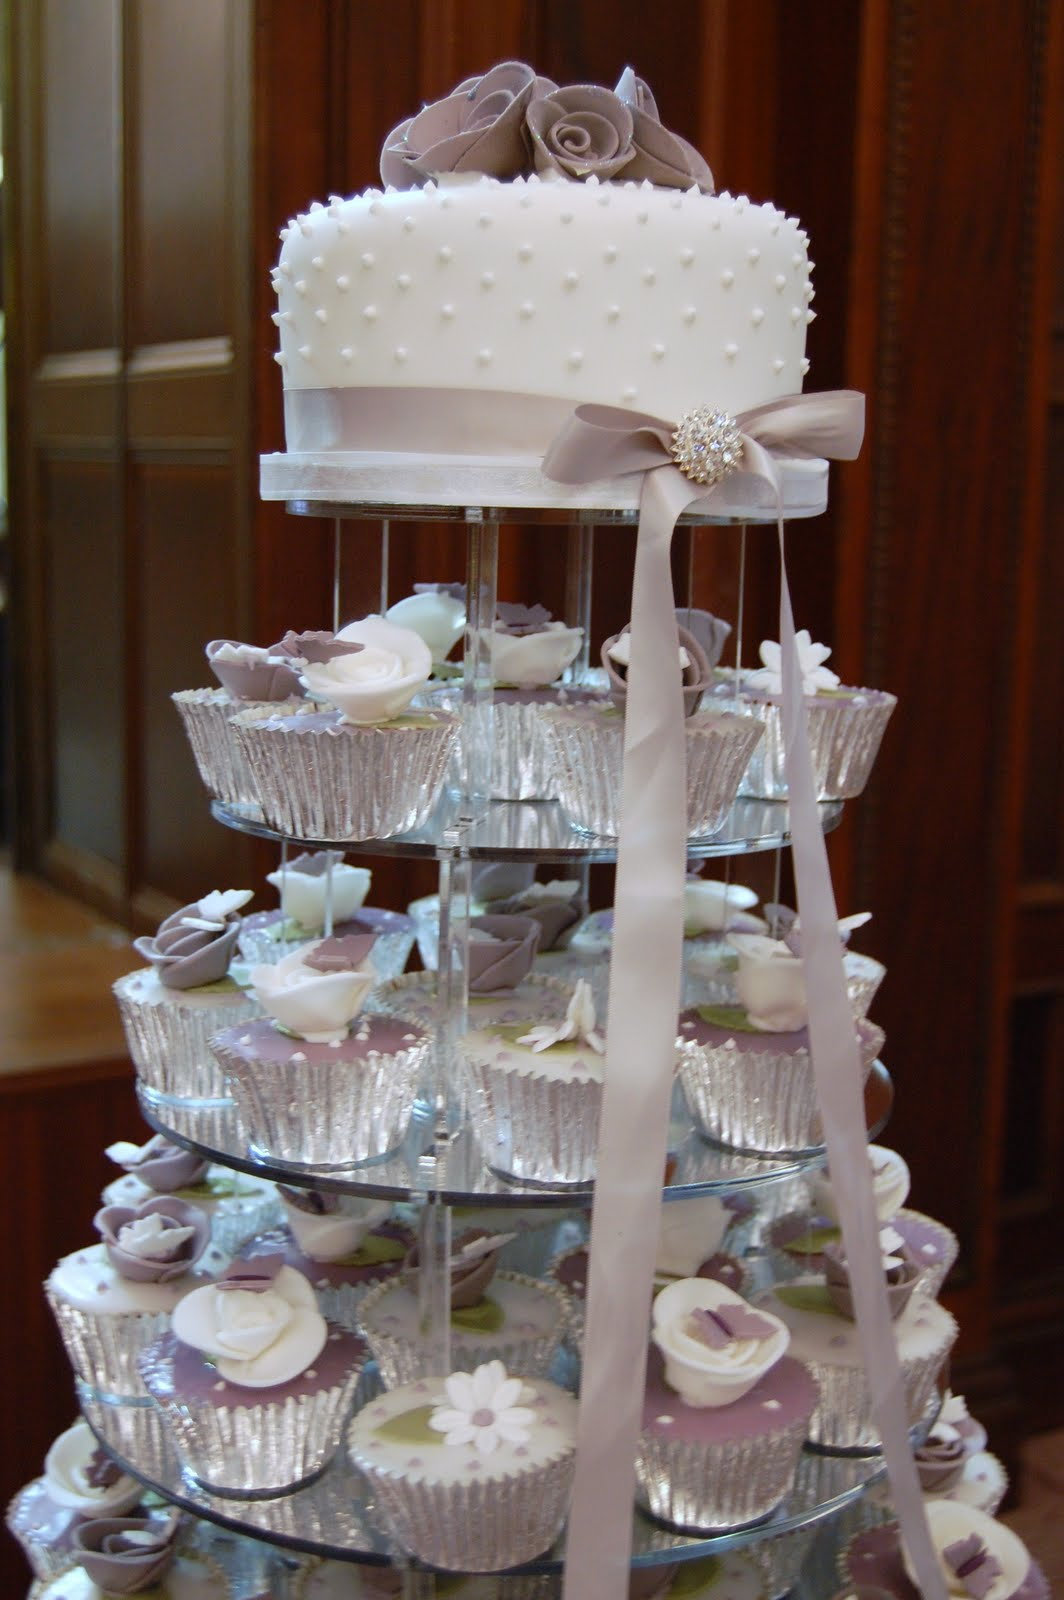 iced victorian lilac cupcake wedding cake. Black Bedroom Furniture Sets. Home Design Ideas